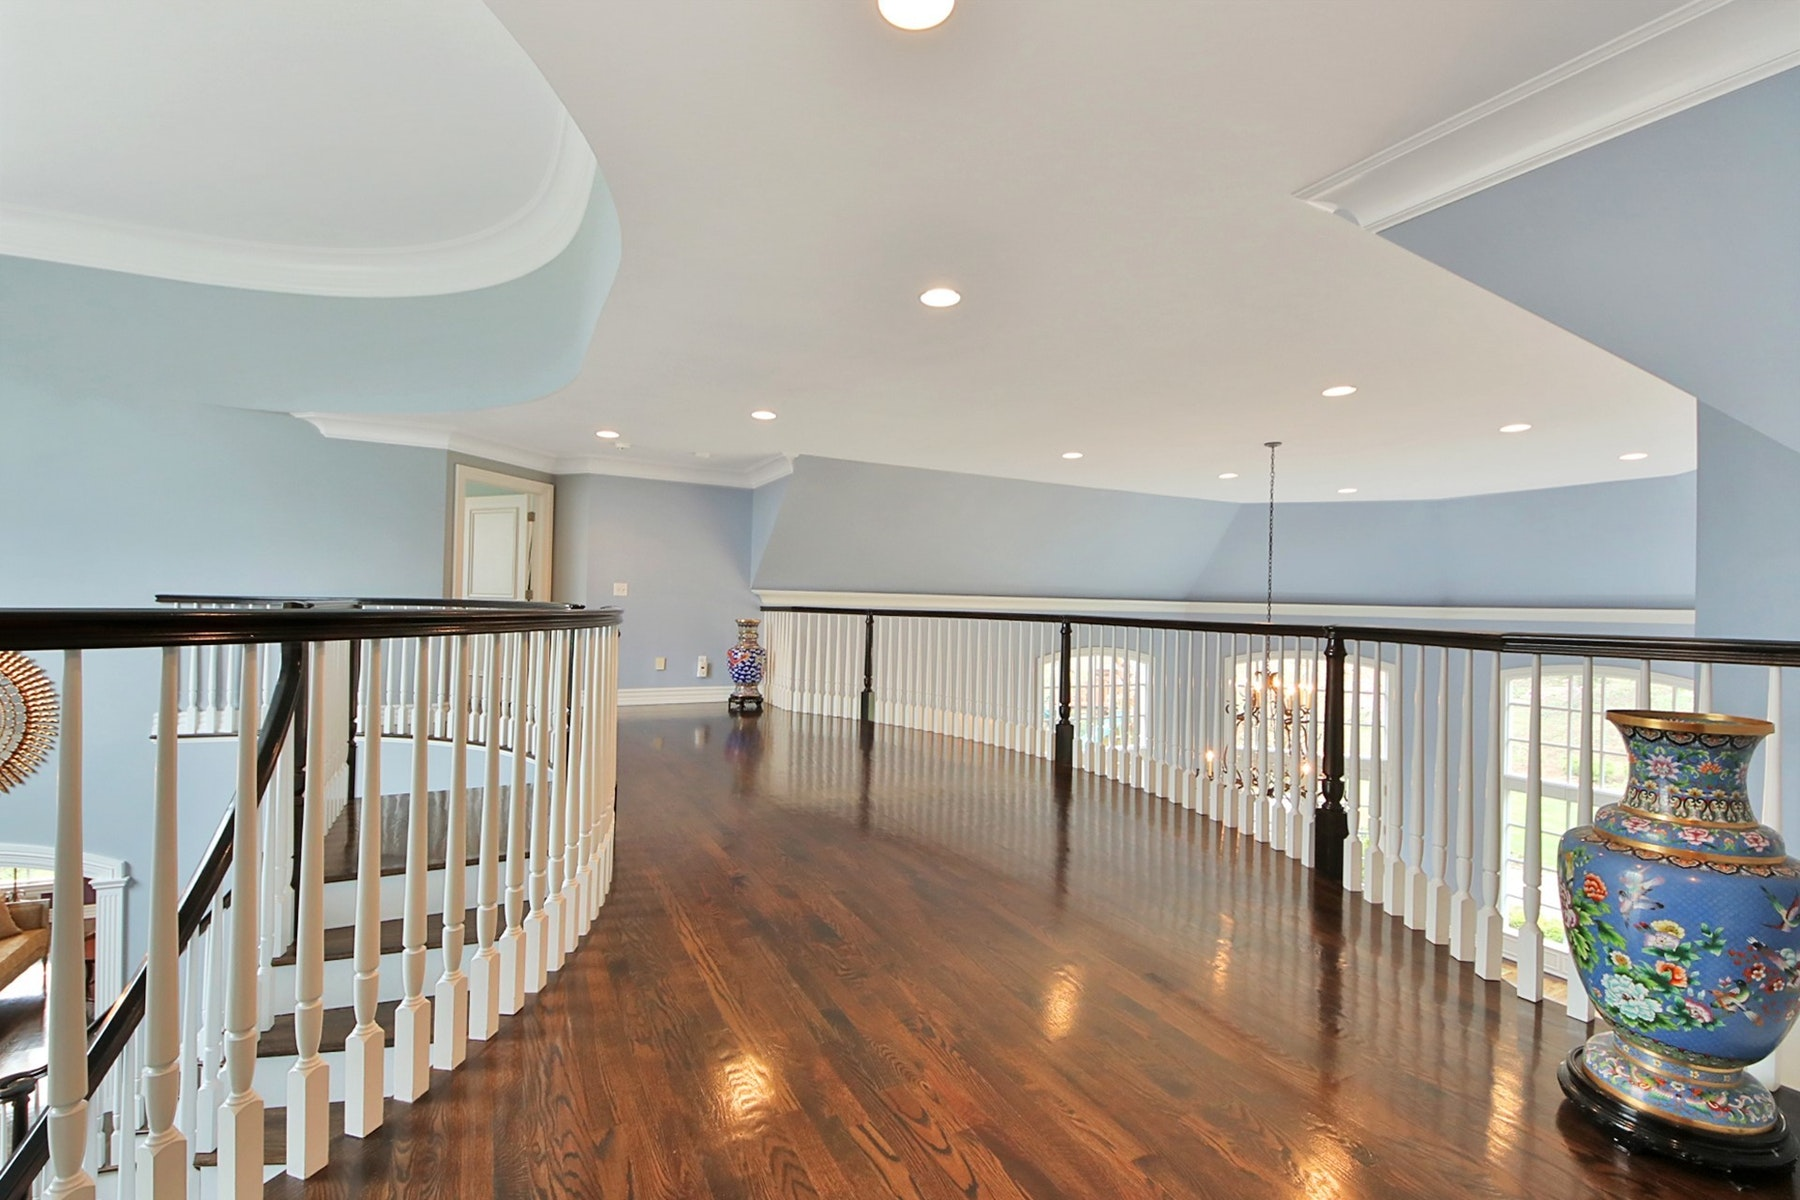 Additional photo for property listing at Sophisticated Elegance 164 North Murray Ave, 里奇伍德, 新泽西州 07450 美国